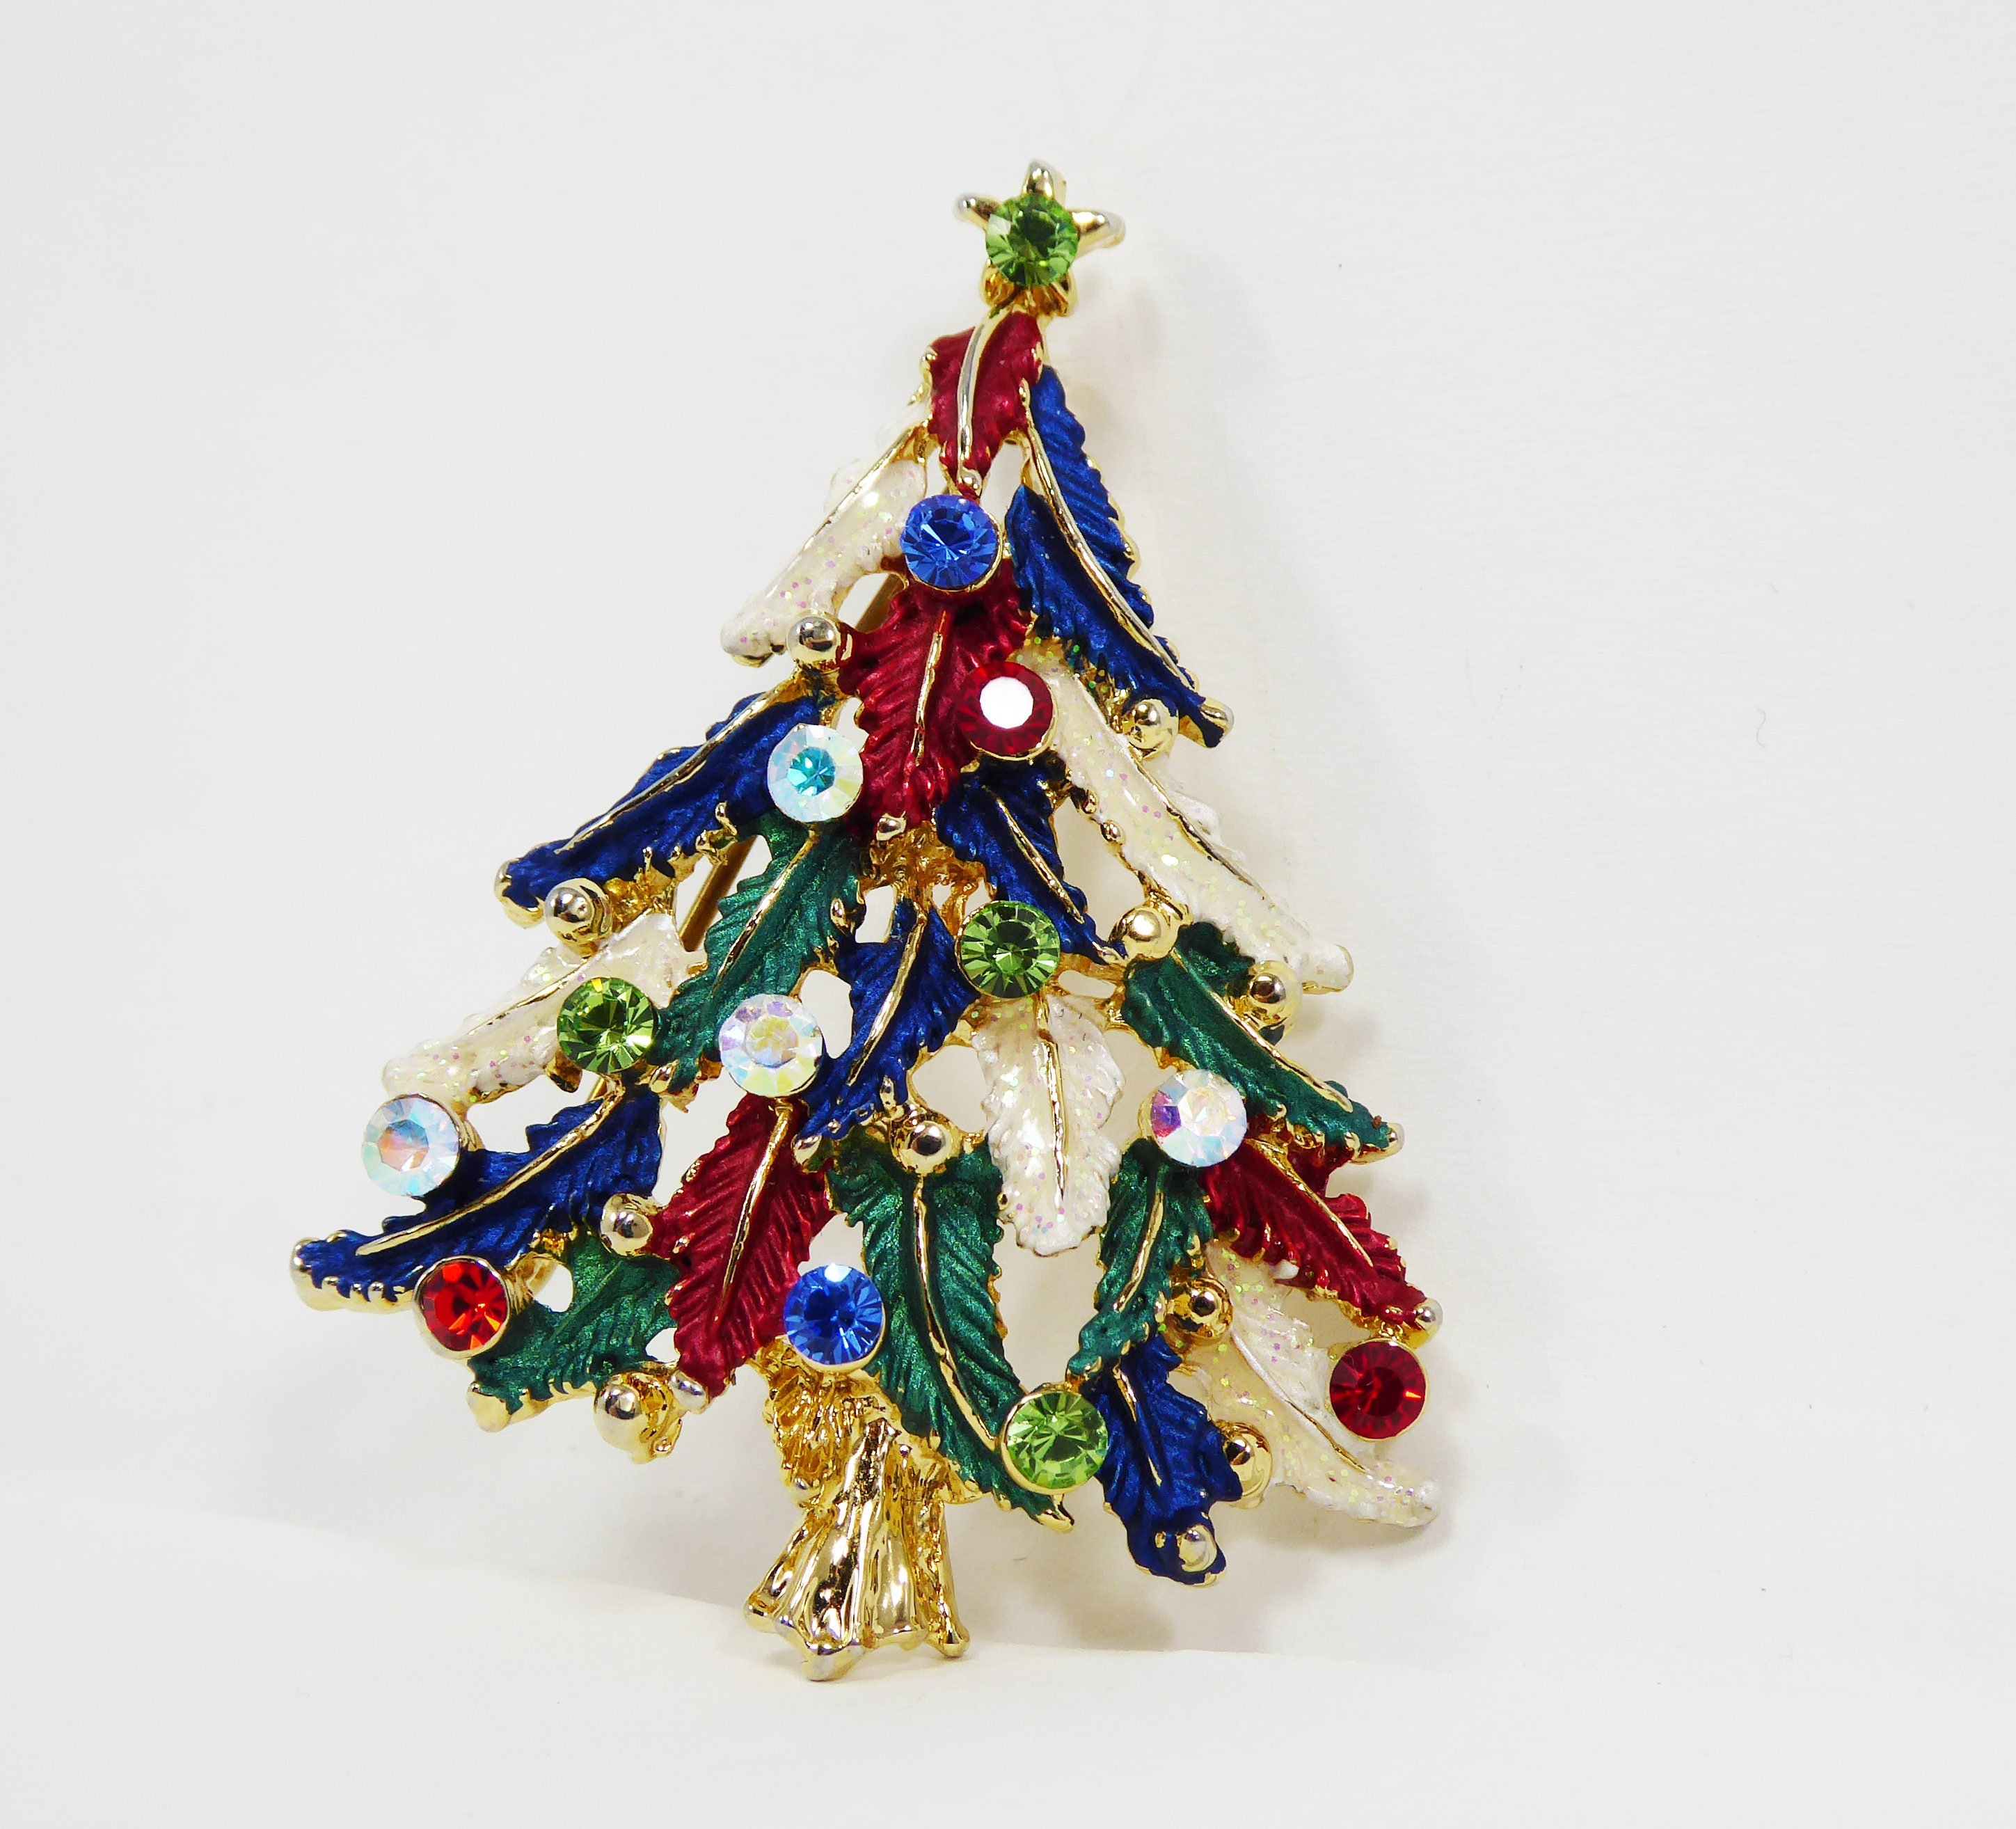 Patriotic Christmas Tree.Patriotic Christmas Tree Brooch With Red White Blue